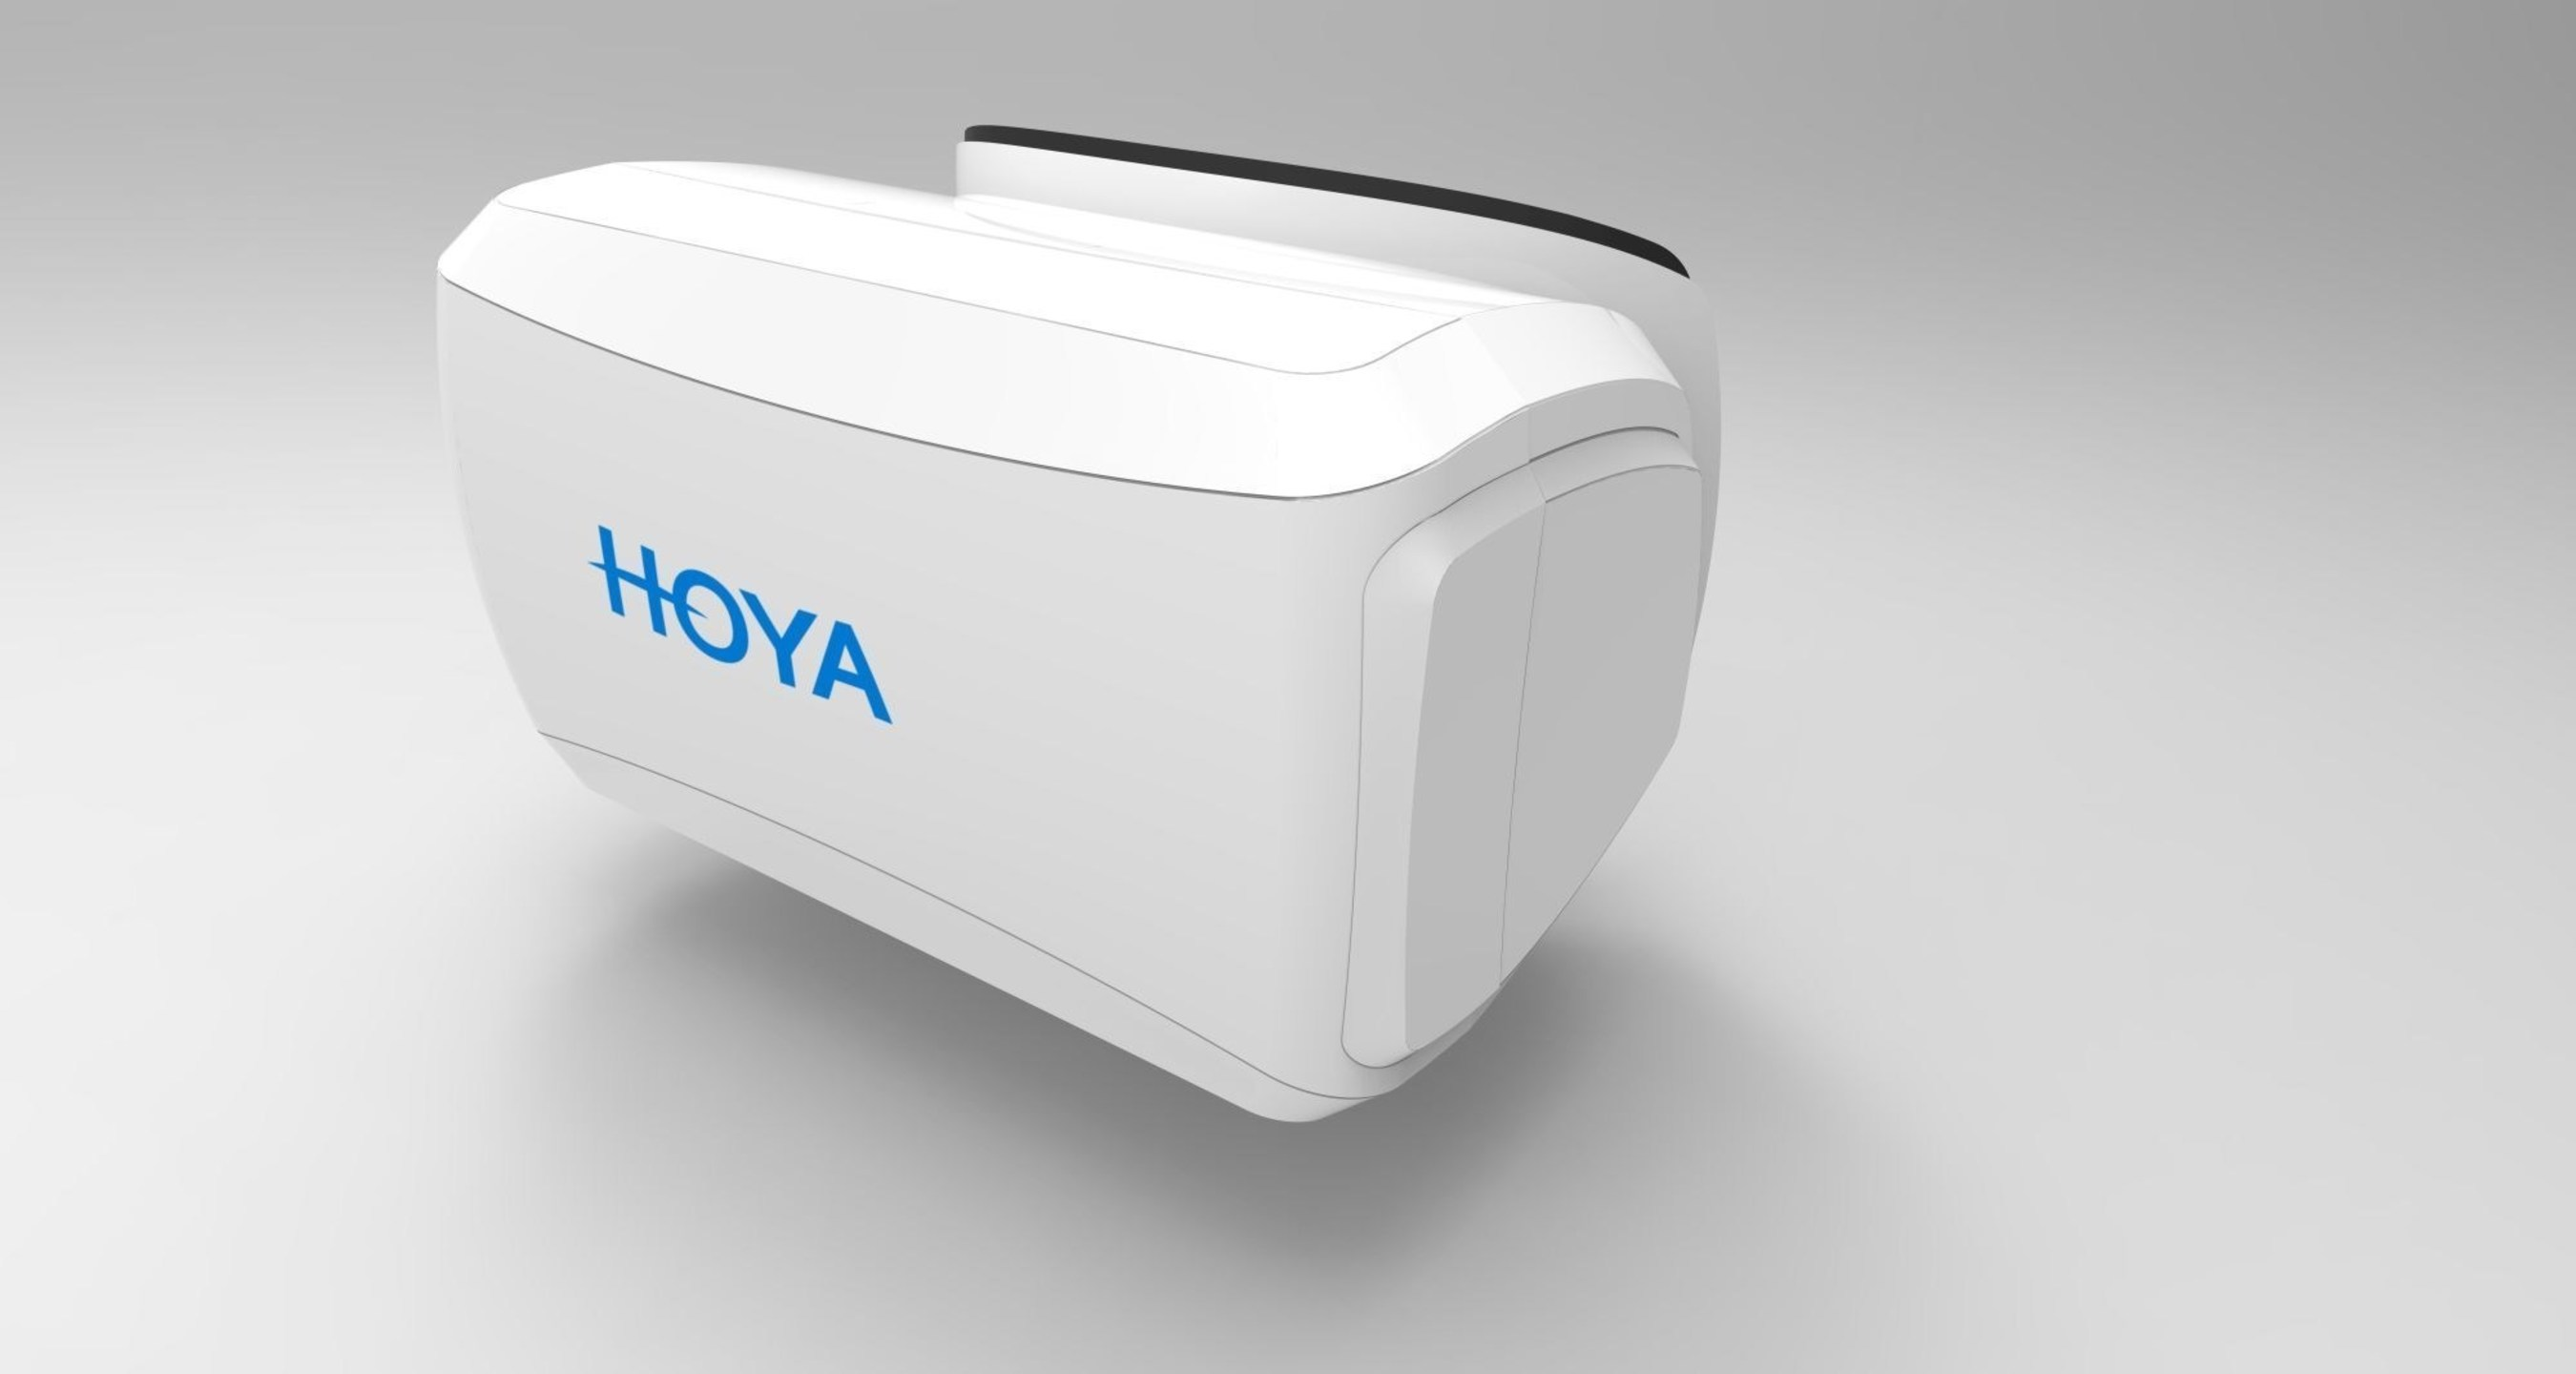 HOYA brings highly accurate 3D vision simulation to stores. *Note: Pictures do not represent the final product (PRNewsFoto/HOYA Vision Care Europe) (PRNewsFoto/HOYA Vision Care Europe)